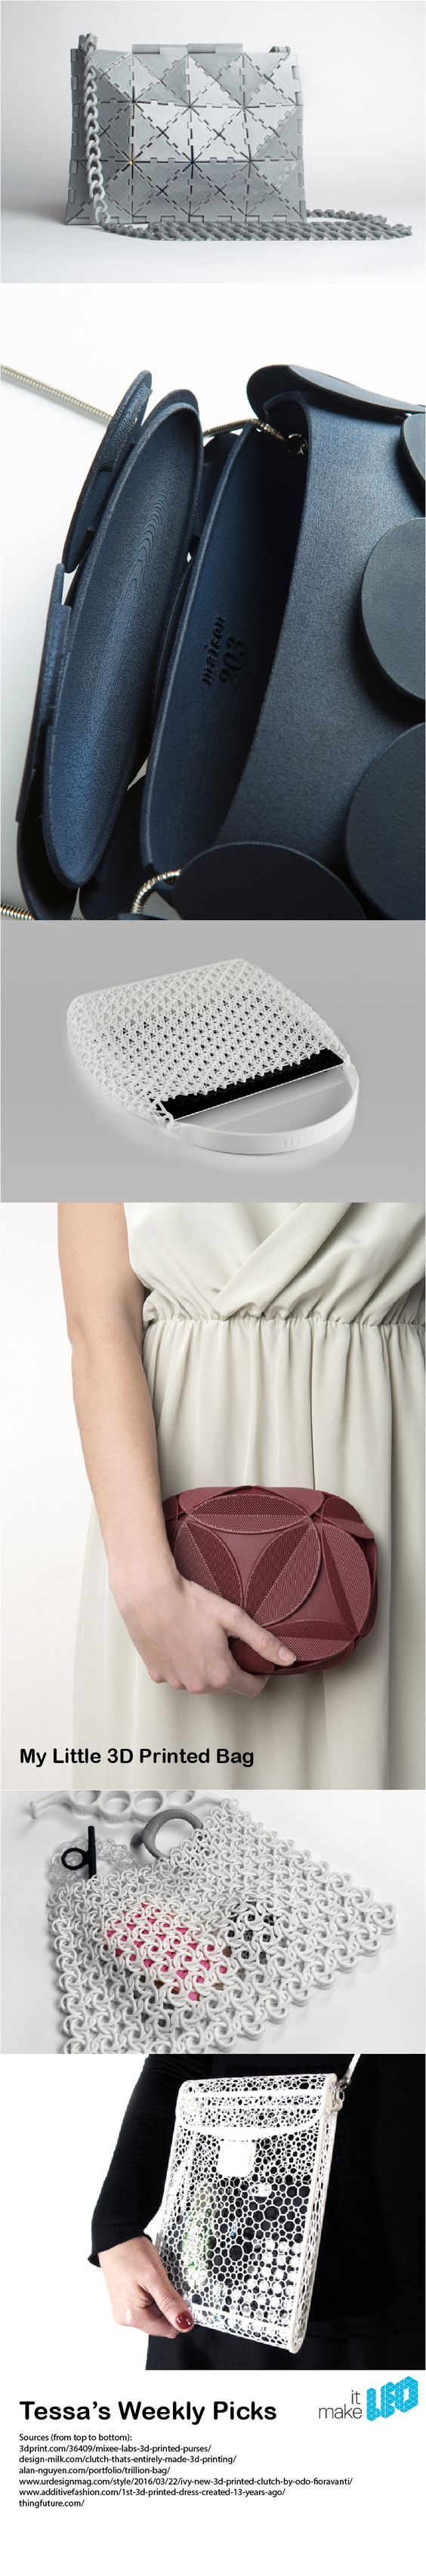 6 3D printed bag designss for an evening out - Tessa's Weekly Picks | Make it LEO